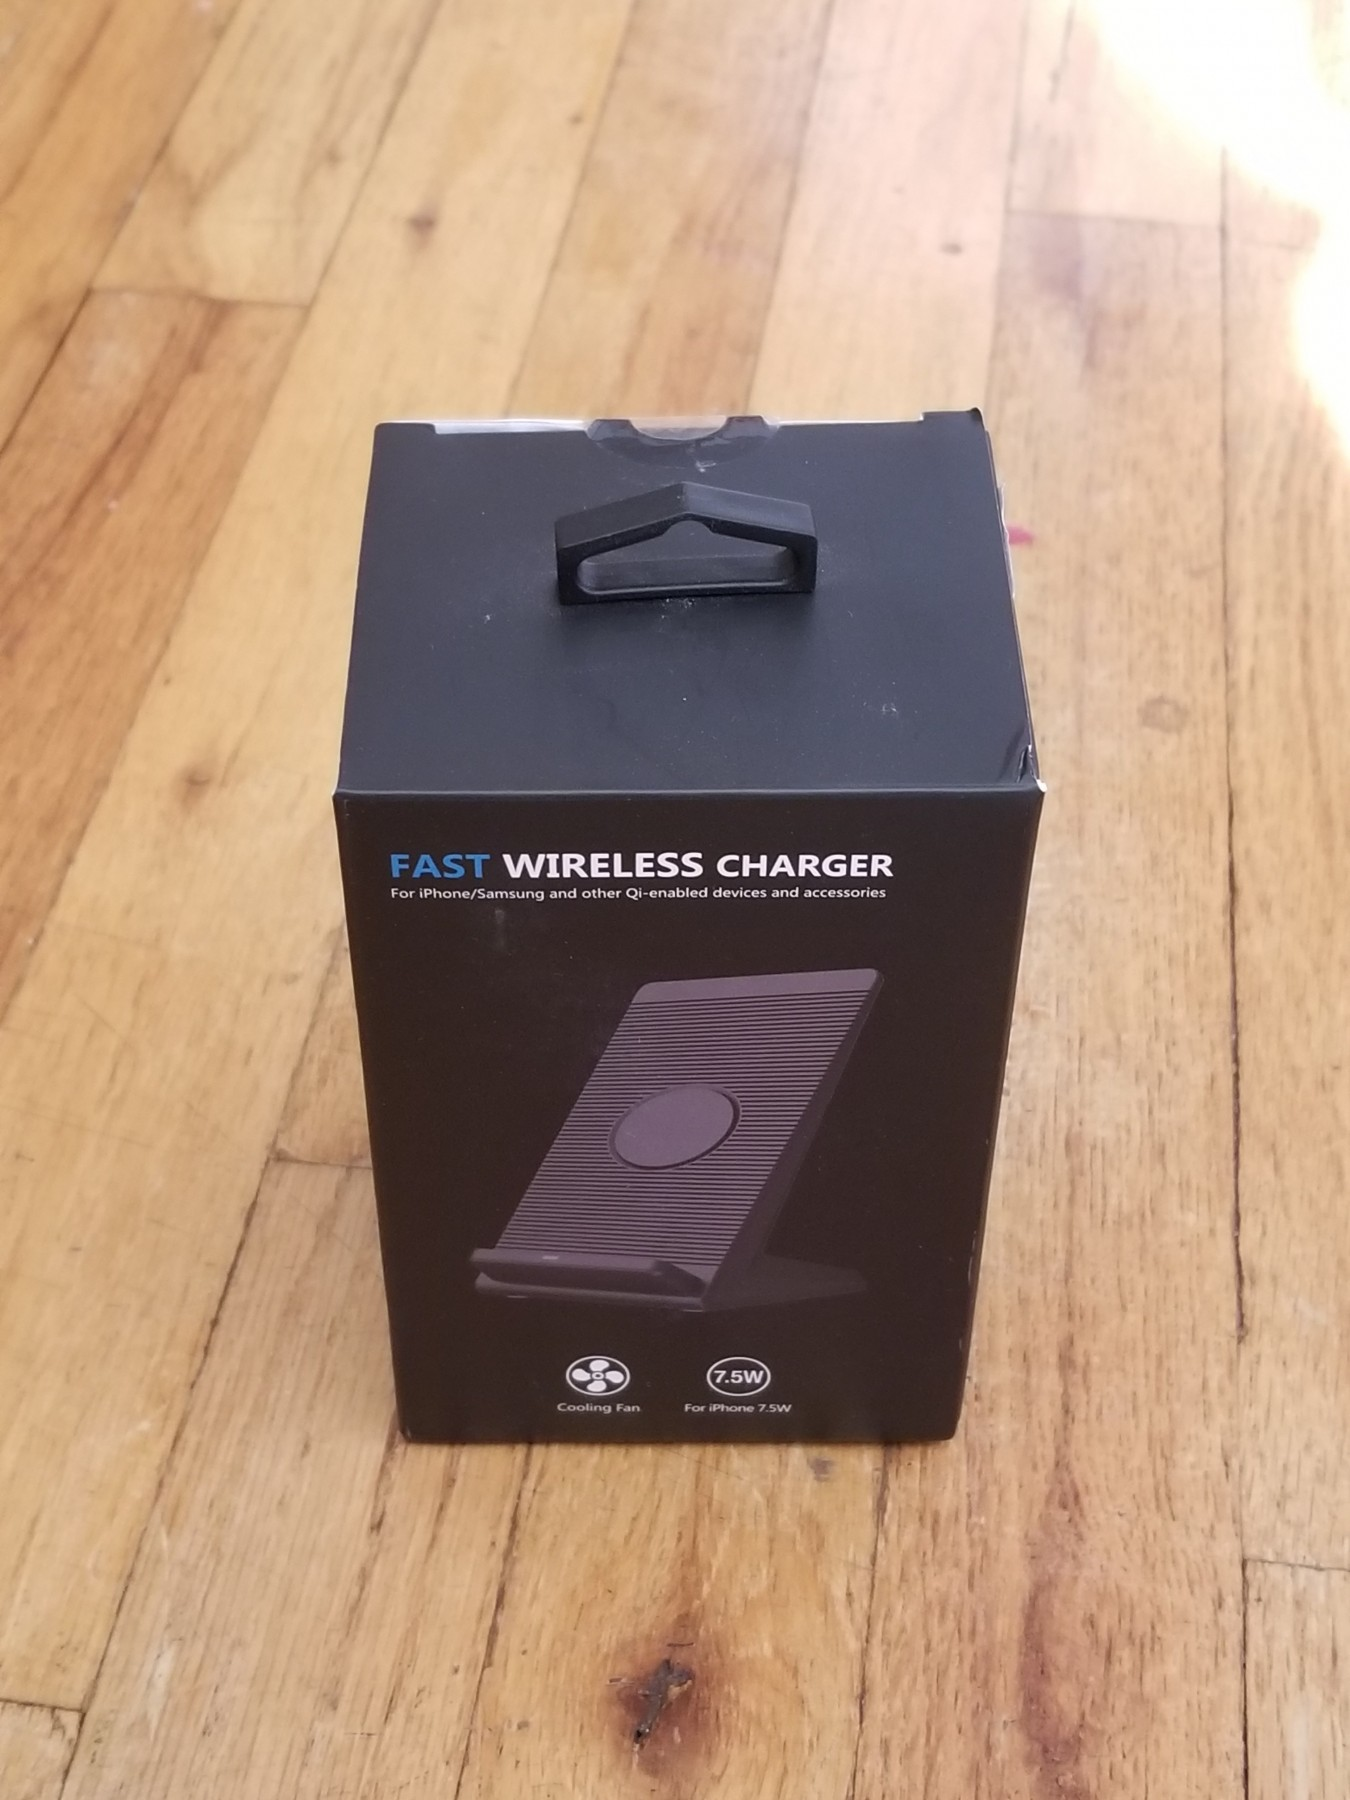 Overall, it is a good fast wireless charger/stand combo